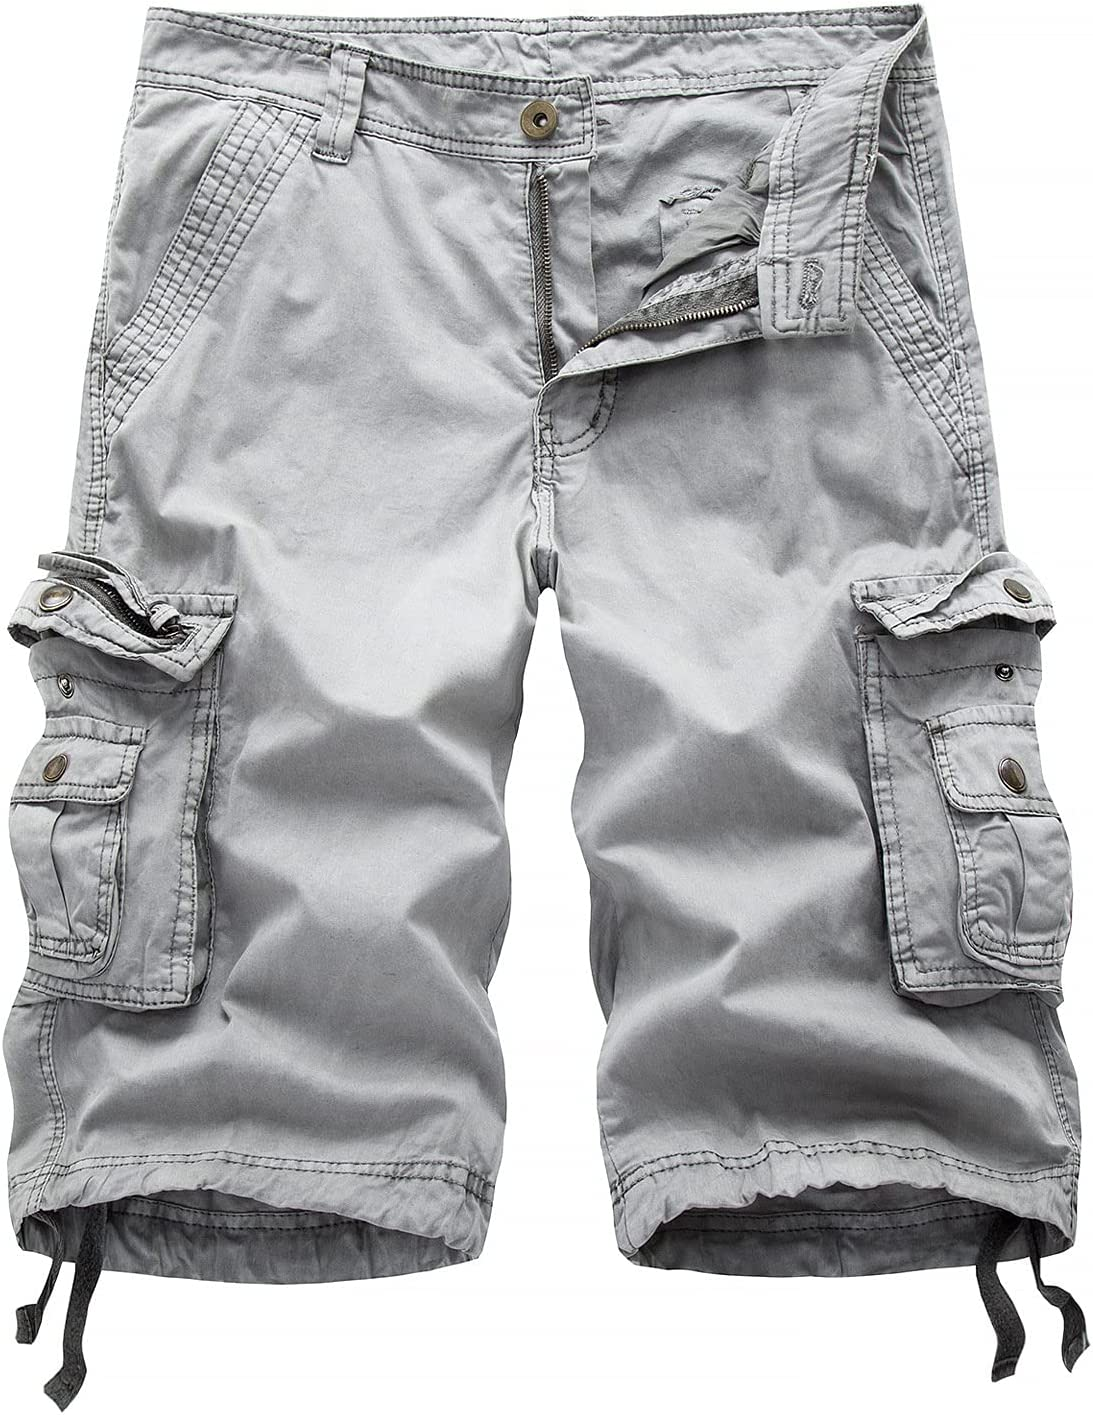 Outdoor Twill Cargo Shorts for Men Casual Summer Lightweight Outdoor Shorts Relaxed Fit Stretchy Multi-Pocket Shorts (Grey,31)